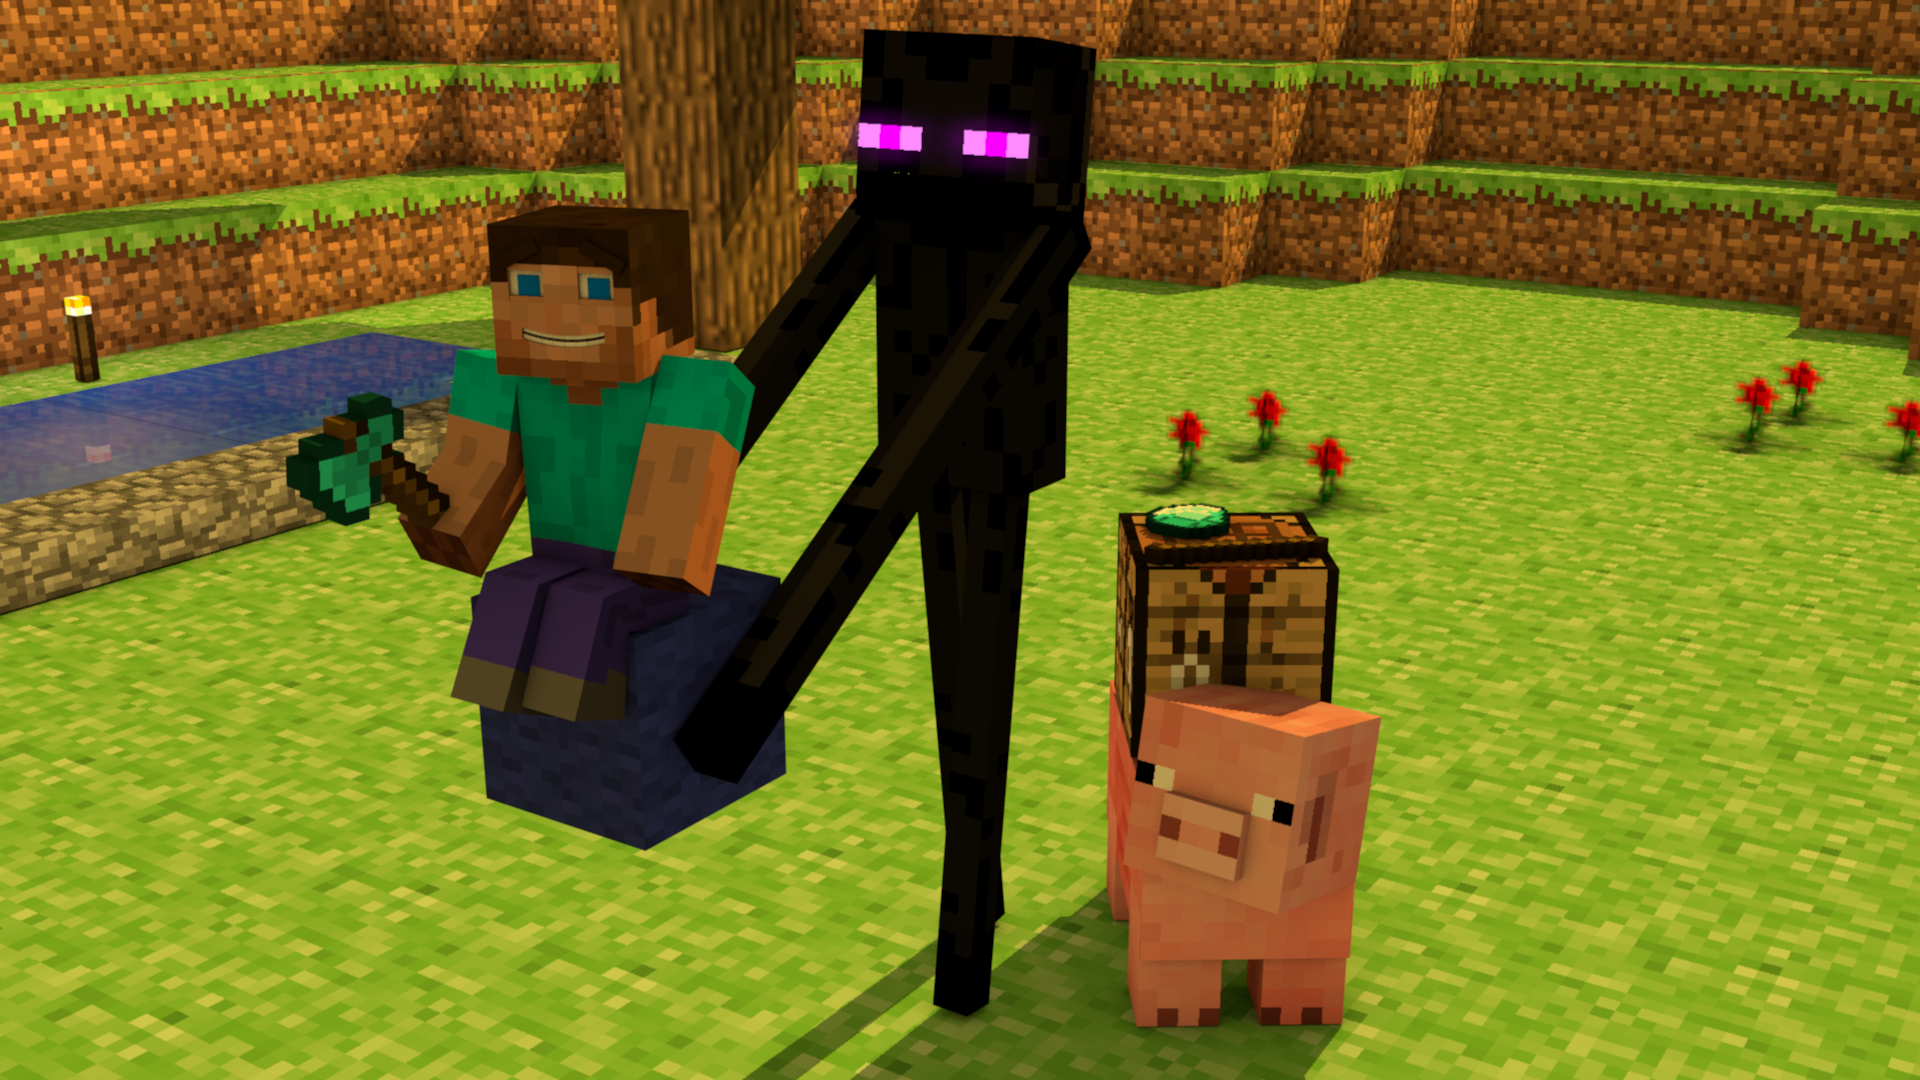 enderman minecraft wallpaper wolf - photo #27